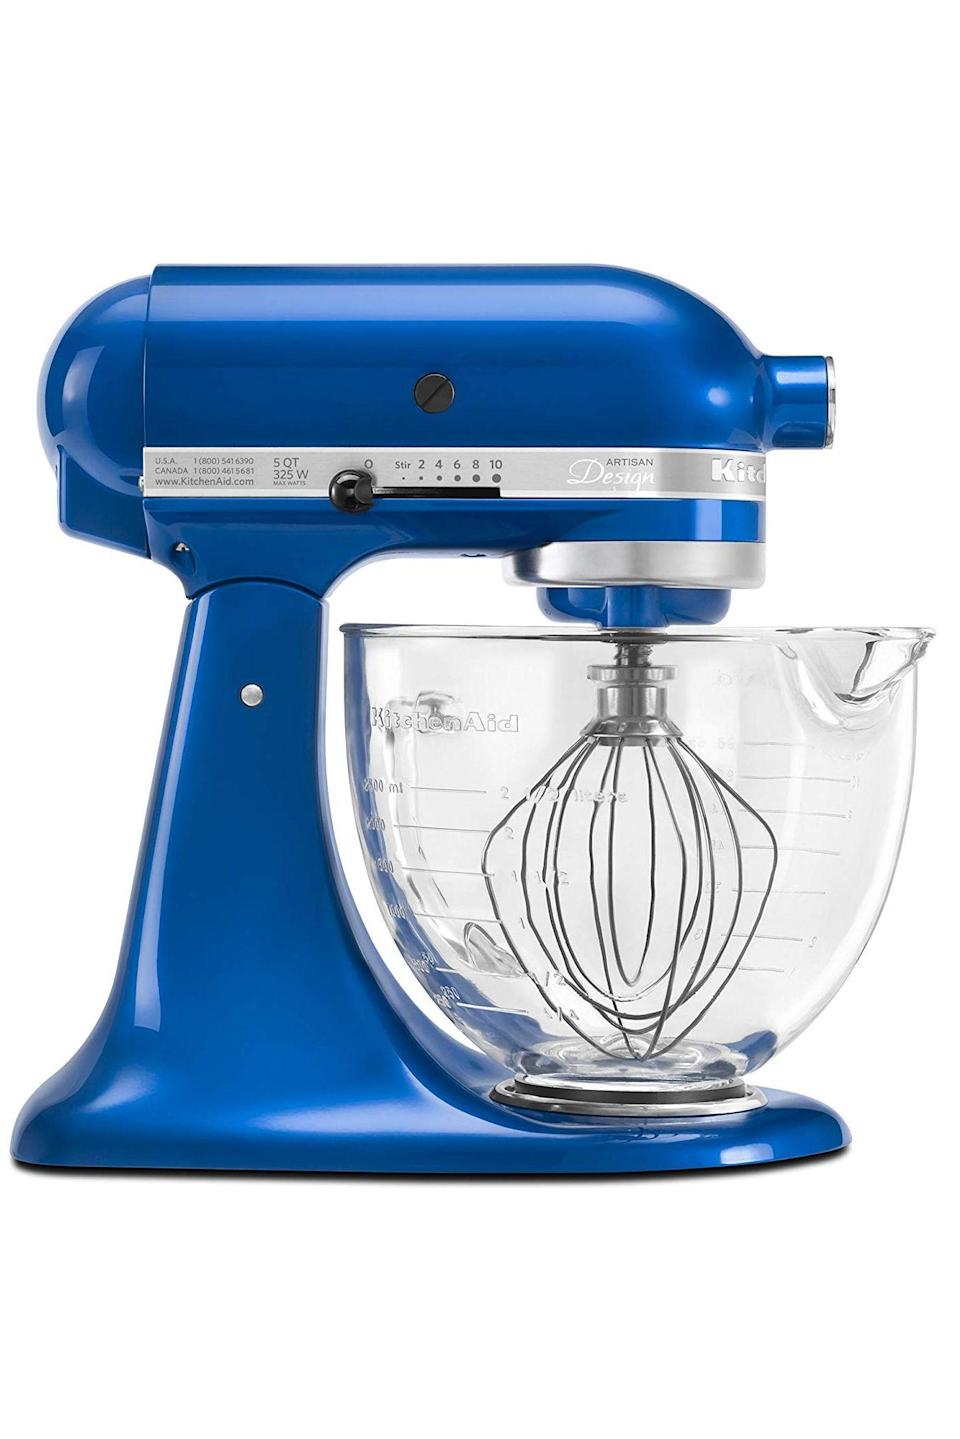 """<p><strong>KitchenAid</strong></p><p>williams-sonoma.com</p><p><strong>$429.95</strong></p><p><a href=""""https://go.redirectingat.com?id=74968X1596630&url=https%3A%2F%2Fwww.williams-sonoma.com%2Fproducts%2Fkitchenaid-design-series-stand-mixer_2%2F&sref=https%3A%2F%2Fwww.goodhousekeeping.com%2Fappliances%2Fmixer-reviews%2Fg2224%2Fstand-mixer-reviews%2F"""" rel=""""nofollow noopener"""" target=""""_blank"""" data-ylk=""""slk:Shop Now"""" class=""""link rapid-noclick-resp"""">Shop Now</a></p><p>It's the ultimate countertop showpiece for a reason: There's nothing the KitchenAid can't do! Turn to our test's champion for so-smooth cookie dough, cake batter, and perfectly whipped egg whites. It comes with great basics plus you can <strong>add accessories</strong> <strong>like a <a href=""""https://www.amazon.com/KitchenAid-KSMPEXTA-Gourmet-Attachment-Interchangeable/dp/B01ENK4UV2/r"""" rel=""""nofollow noopener"""" target=""""_blank"""" data-ylk=""""slk:pasta maker"""" class=""""link rapid-noclick-resp"""">pasta maker</a>, <a href=""""https://www.amazon.com/KitchenAid-KSM1APC-Spiralizer-Attachment-Slice/dp/B00XPRRHYW/"""" rel=""""nofollow noopener"""" target=""""_blank"""" data-ylk=""""slk:spiralizer"""" class=""""link rapid-noclick-resp"""">spiralizer</a> or <a href=""""https://www.amazon.com/KitchenAid-KSM1JA-Masticating-Juicer-Attachment/dp/B00LEB8IVM/"""" rel=""""nofollow noopener"""" target=""""_blank"""" data-ylk=""""slk:juicer"""" class=""""link rapid-noclick-resp"""">juicer</a></strong>. Not to mention there are now <a href=""""https://go.redirectingat.com?id=74968X1596630&url=https%3A%2F%2Fwww.kitchenaid.com%2Fcustom.html&sref=https%3A%2F%2Fwww.goodhousekeeping.com%2Fappliances%2Fmixer-reviews%2Fg2224%2Fstand-mixer-reviews%2F"""" rel=""""nofollow noopener"""" target=""""_blank"""" data-ylk=""""slk:30 fun color options to choose from"""" class=""""link rapid-noclick-resp"""">30 fun color options to choose from</a>; plus, the option to engrave it and choose from 15 different bowl designs. Seriously, when it comes to mixing power, this five-quart classic is unparalleled. </p>"""